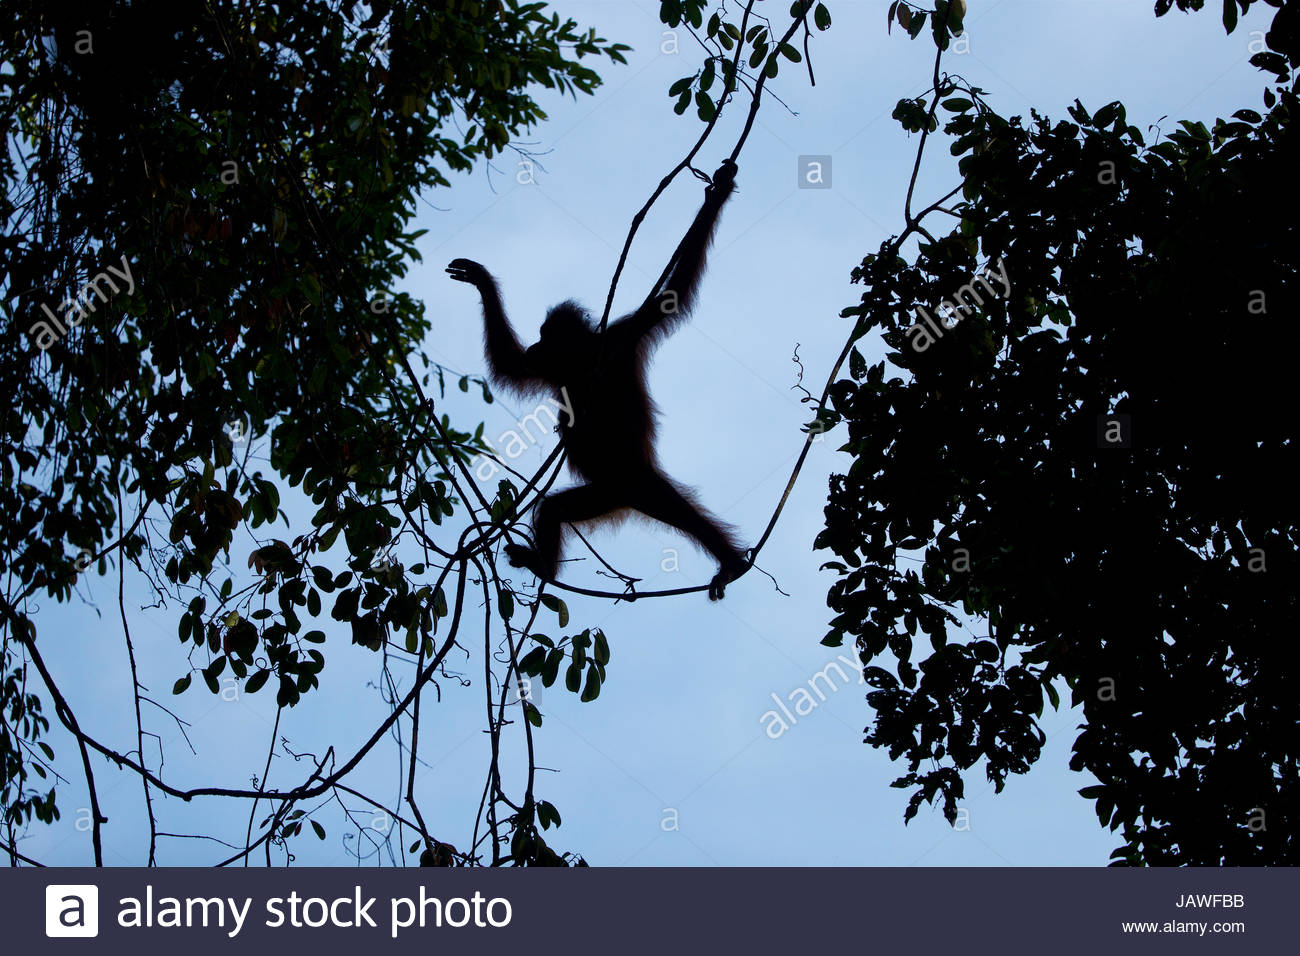 Adult female Bornean orangutan, Pongo pygmaeus wurmbii, with an injured left foot, swings from the trees in Gunung - Stock Image